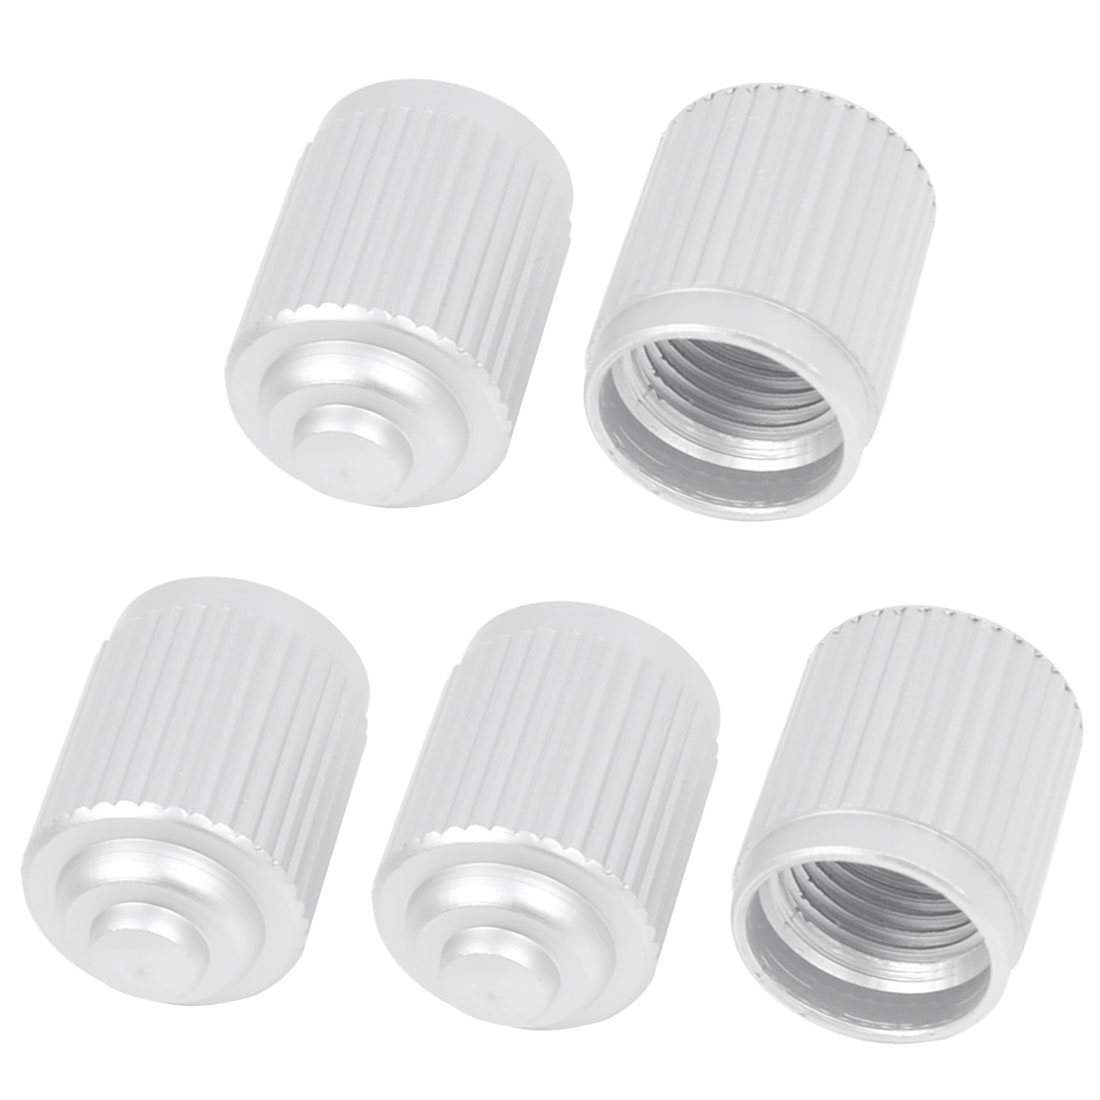 7mm Thread Dia Silver Tone Aluminium Alloy Mountain Bike Tire Valve Caps 5 Pcs